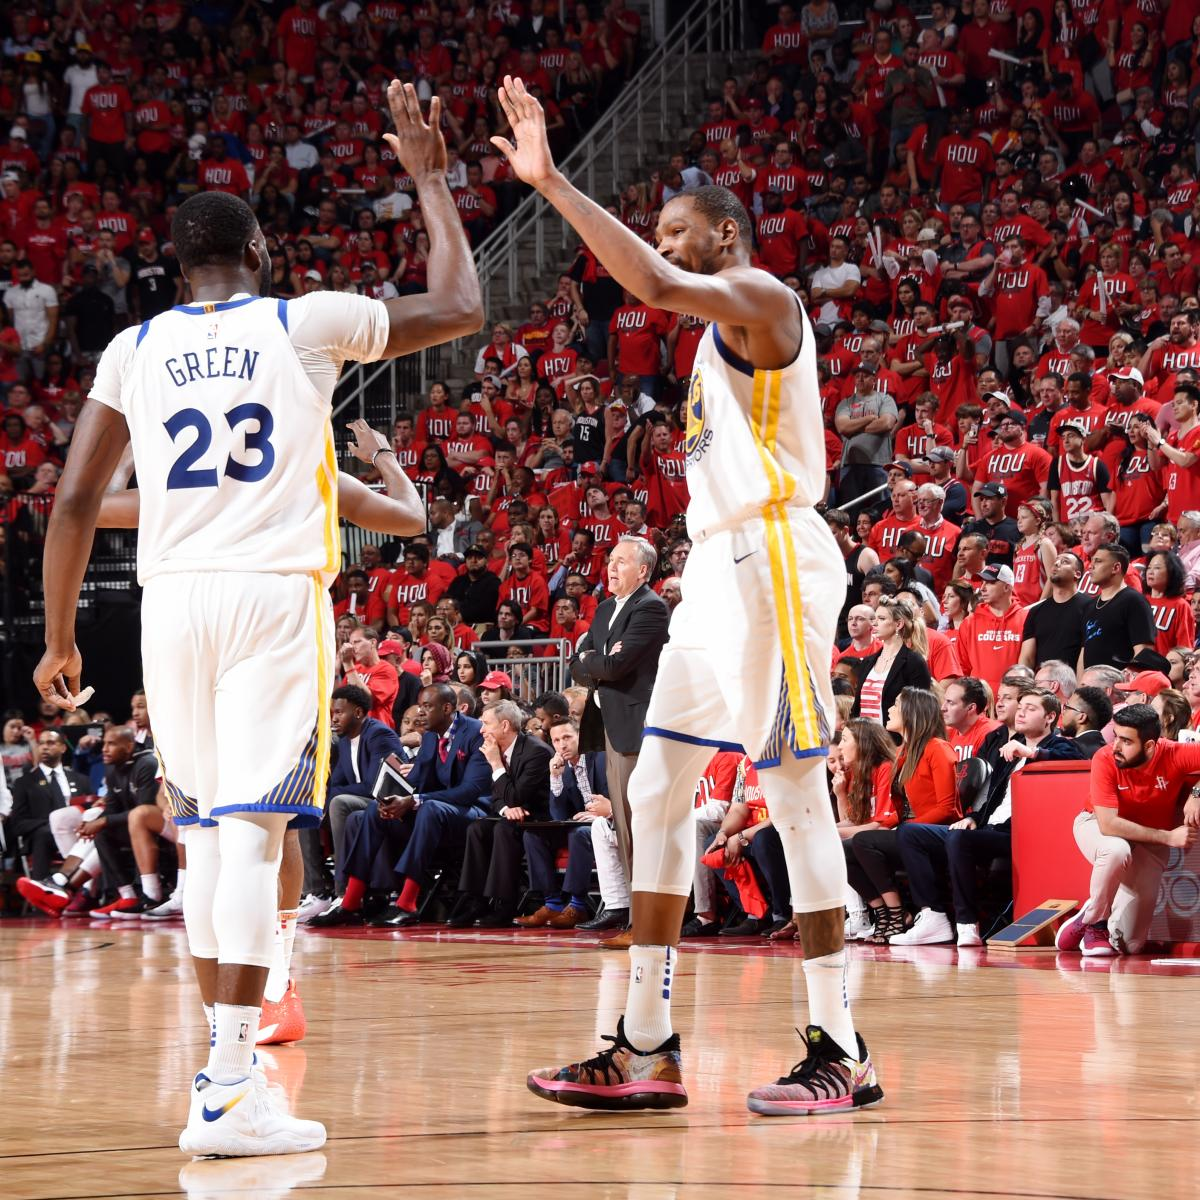 NBA Playoff Bracket 2018: Dates, Game Times, TV Schedule for Conference Finals